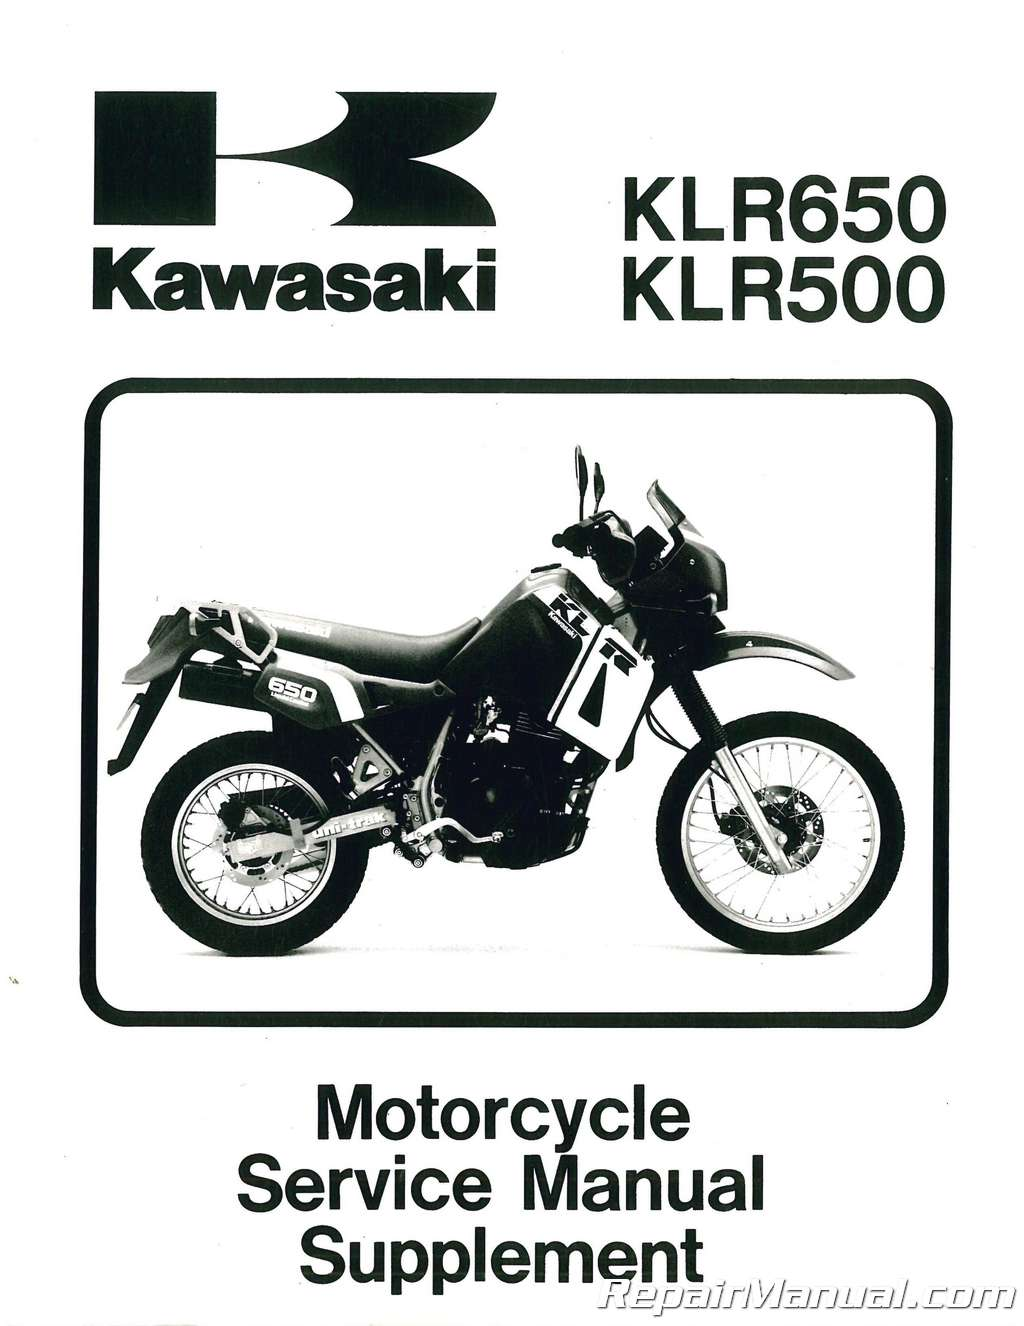 klr 650 factory service manual